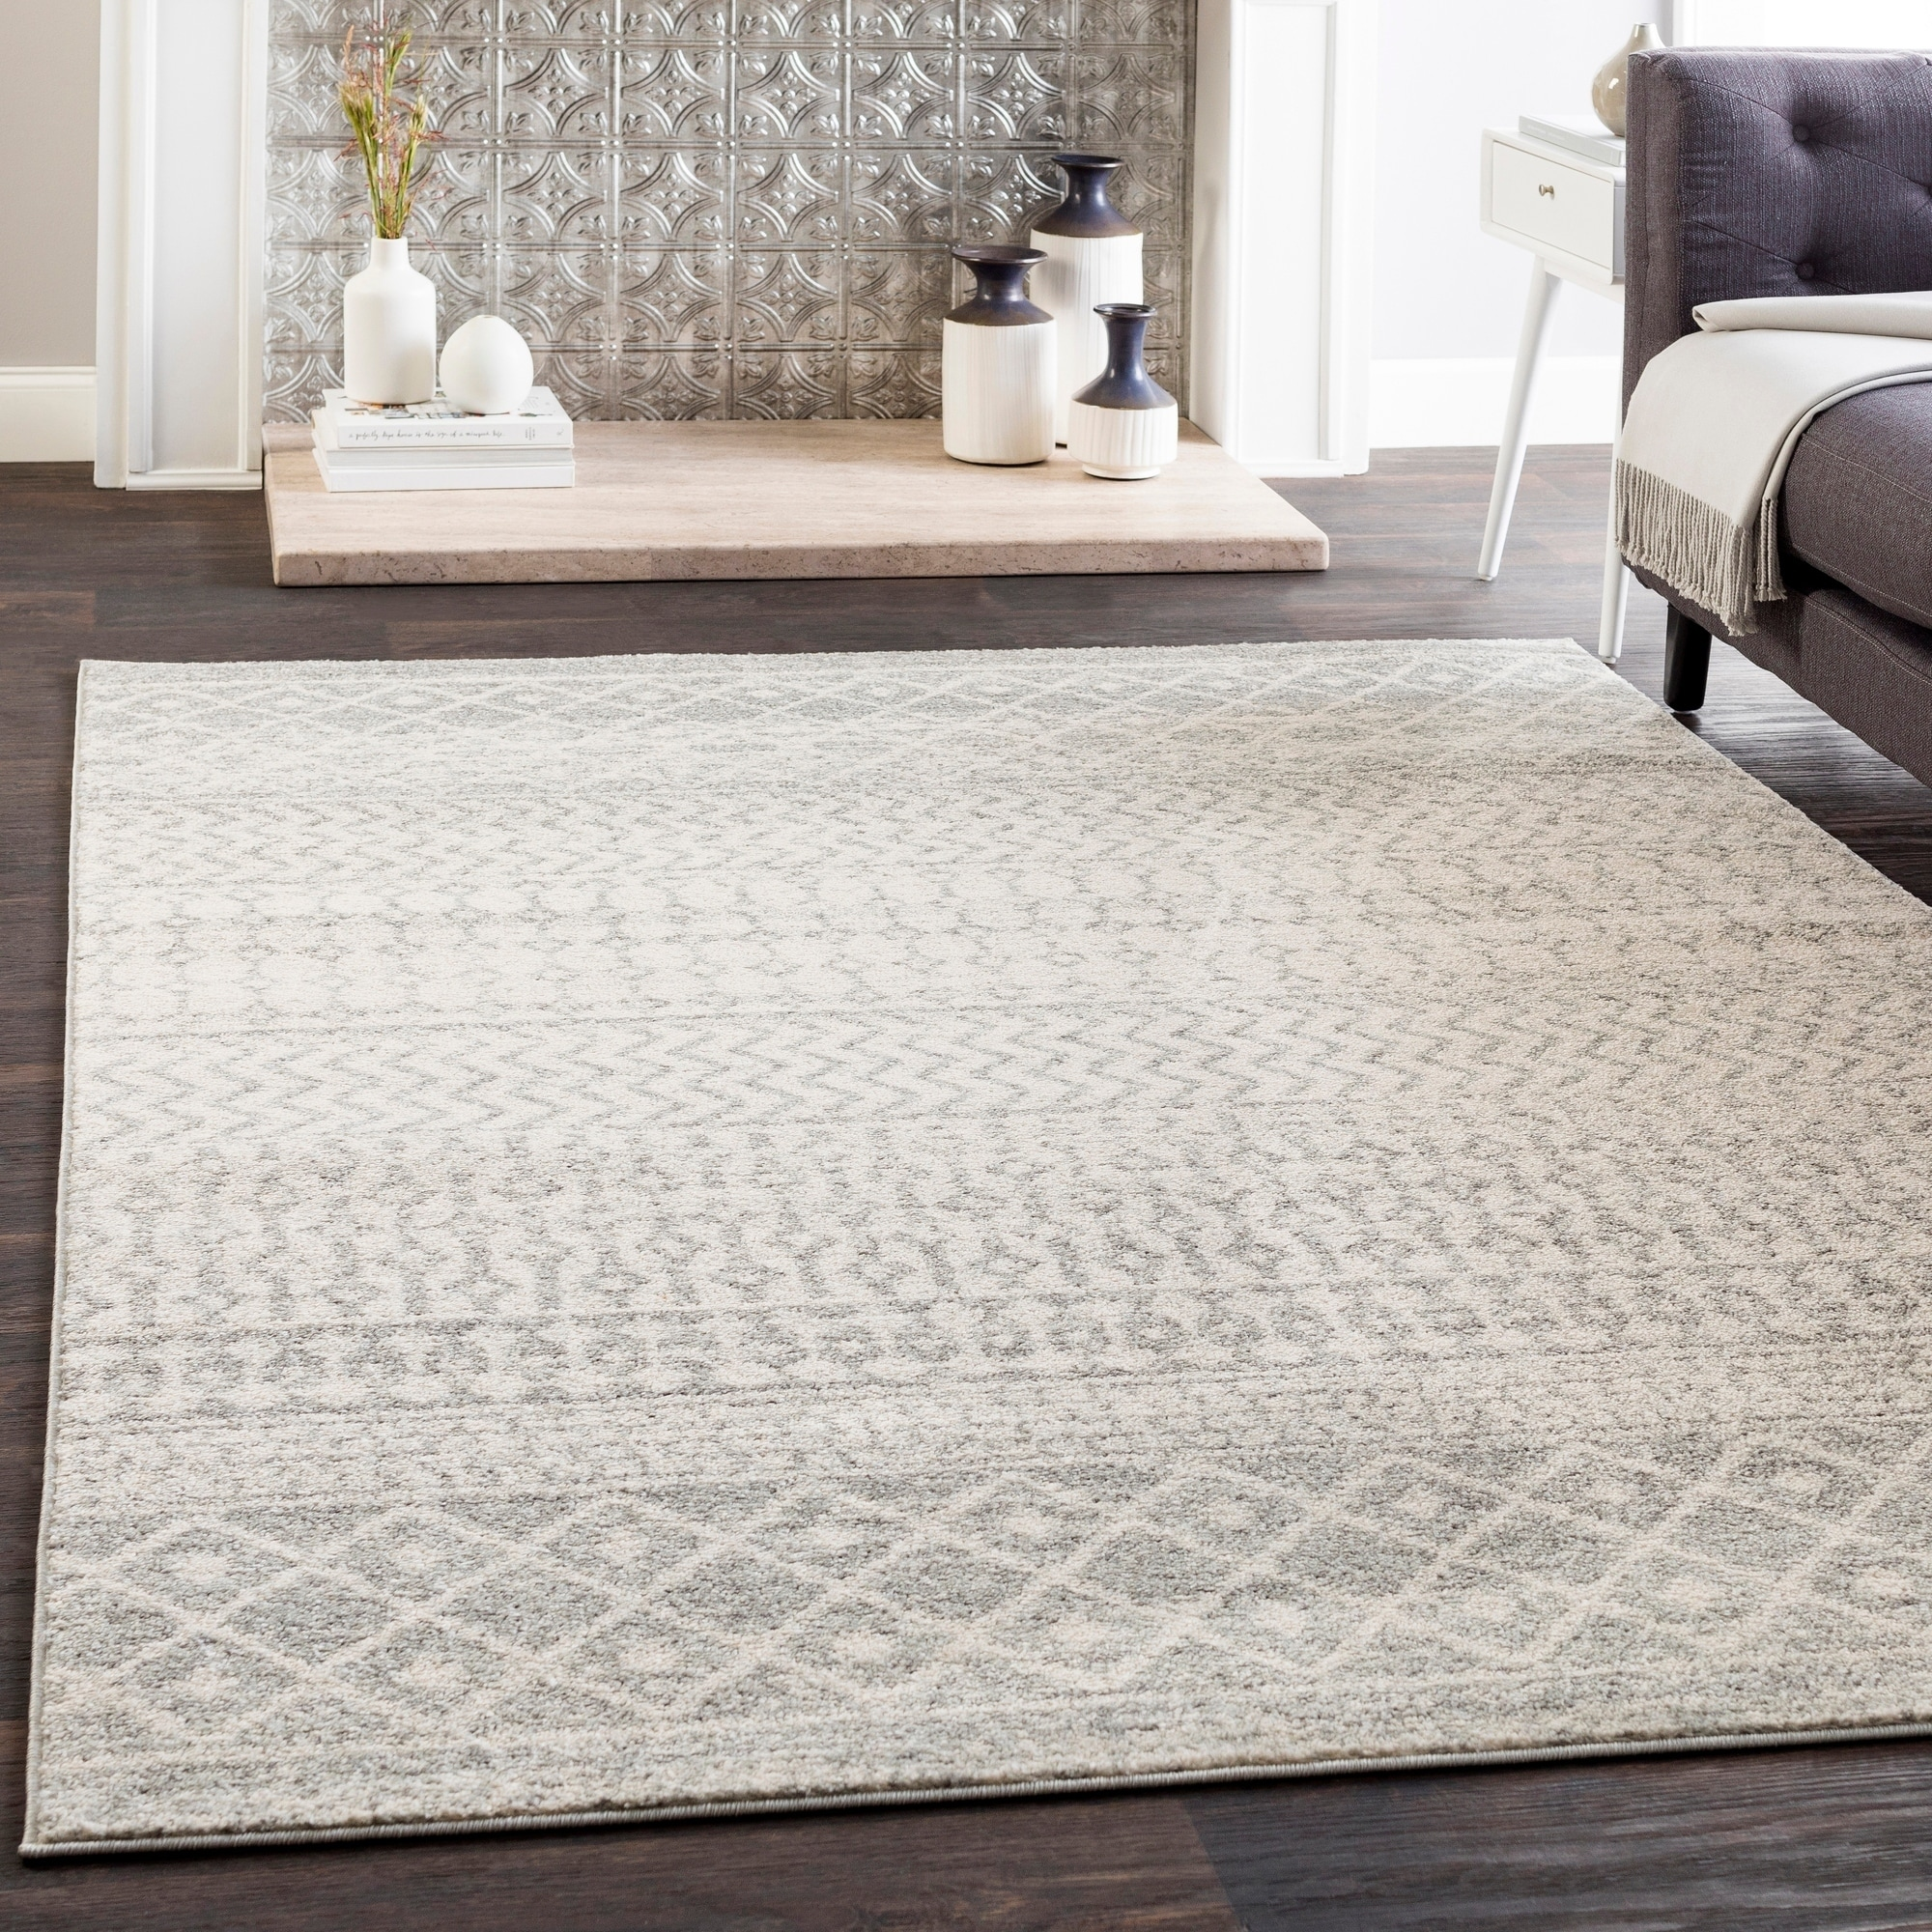 Buy Grey 8 X 10 Area Rugs Online At Overstock Our Best